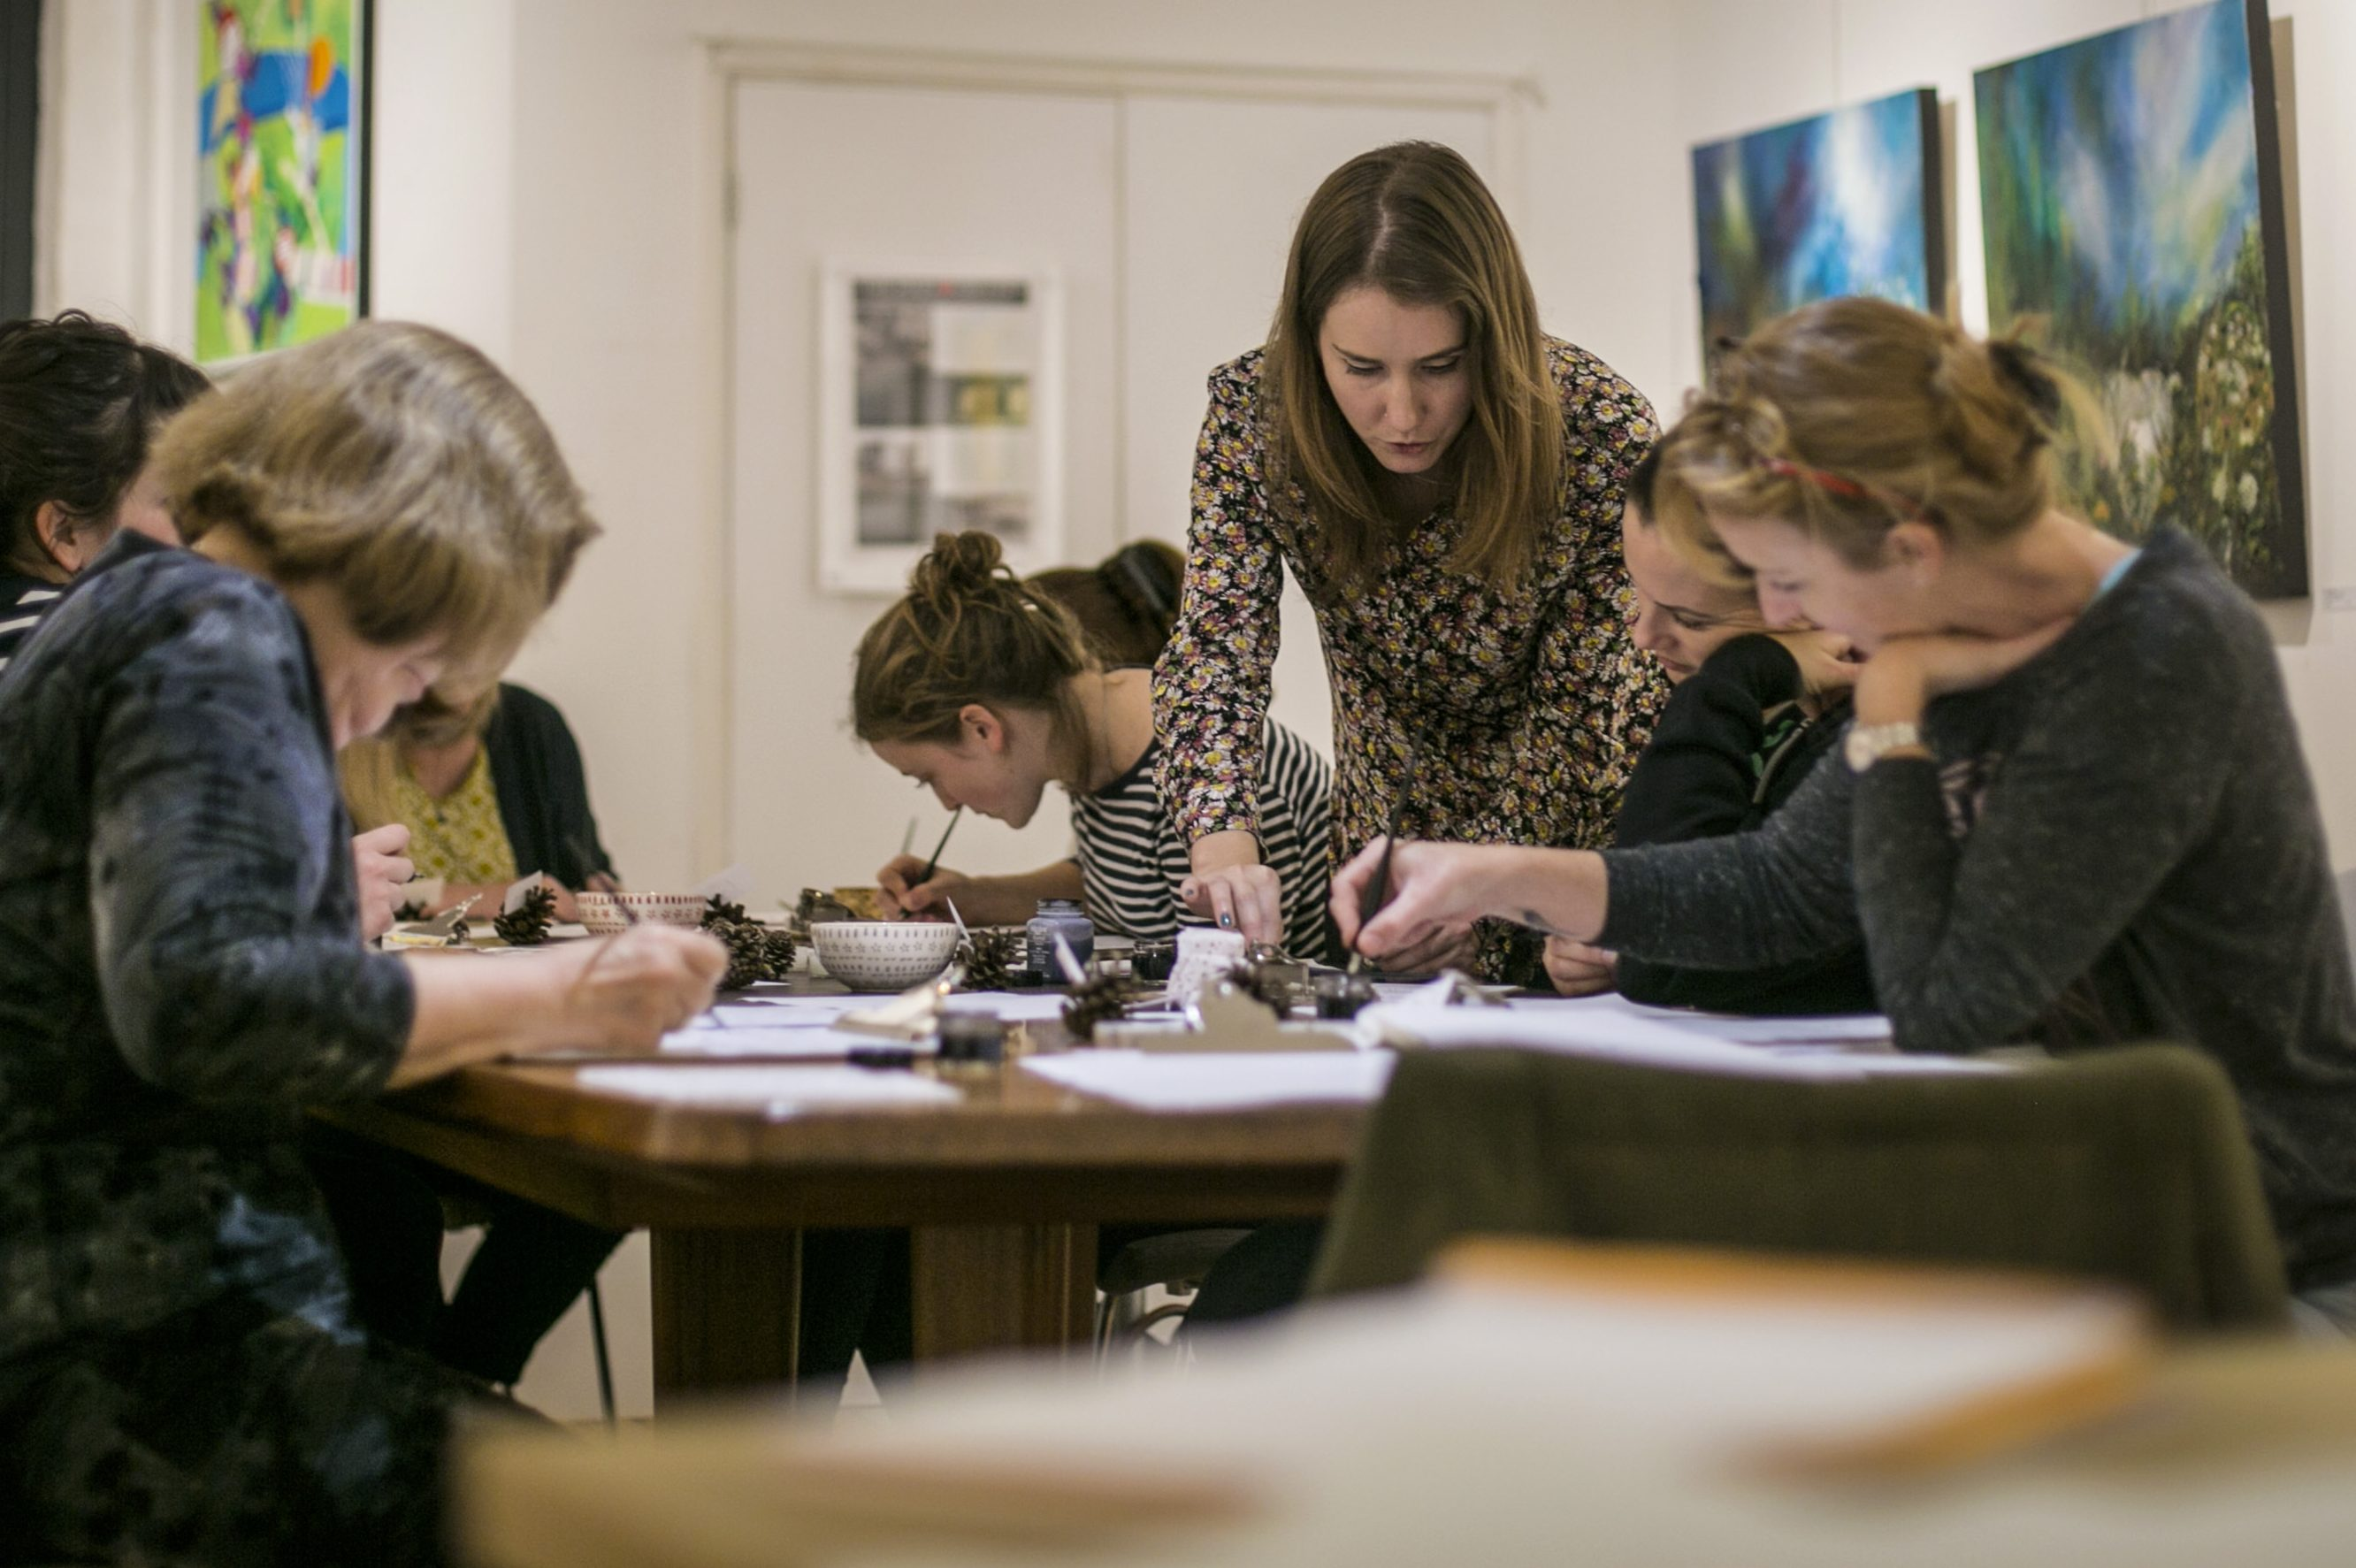 Francesca McLean Introduction to Modern Calligraphy image showing Francesca working with her group